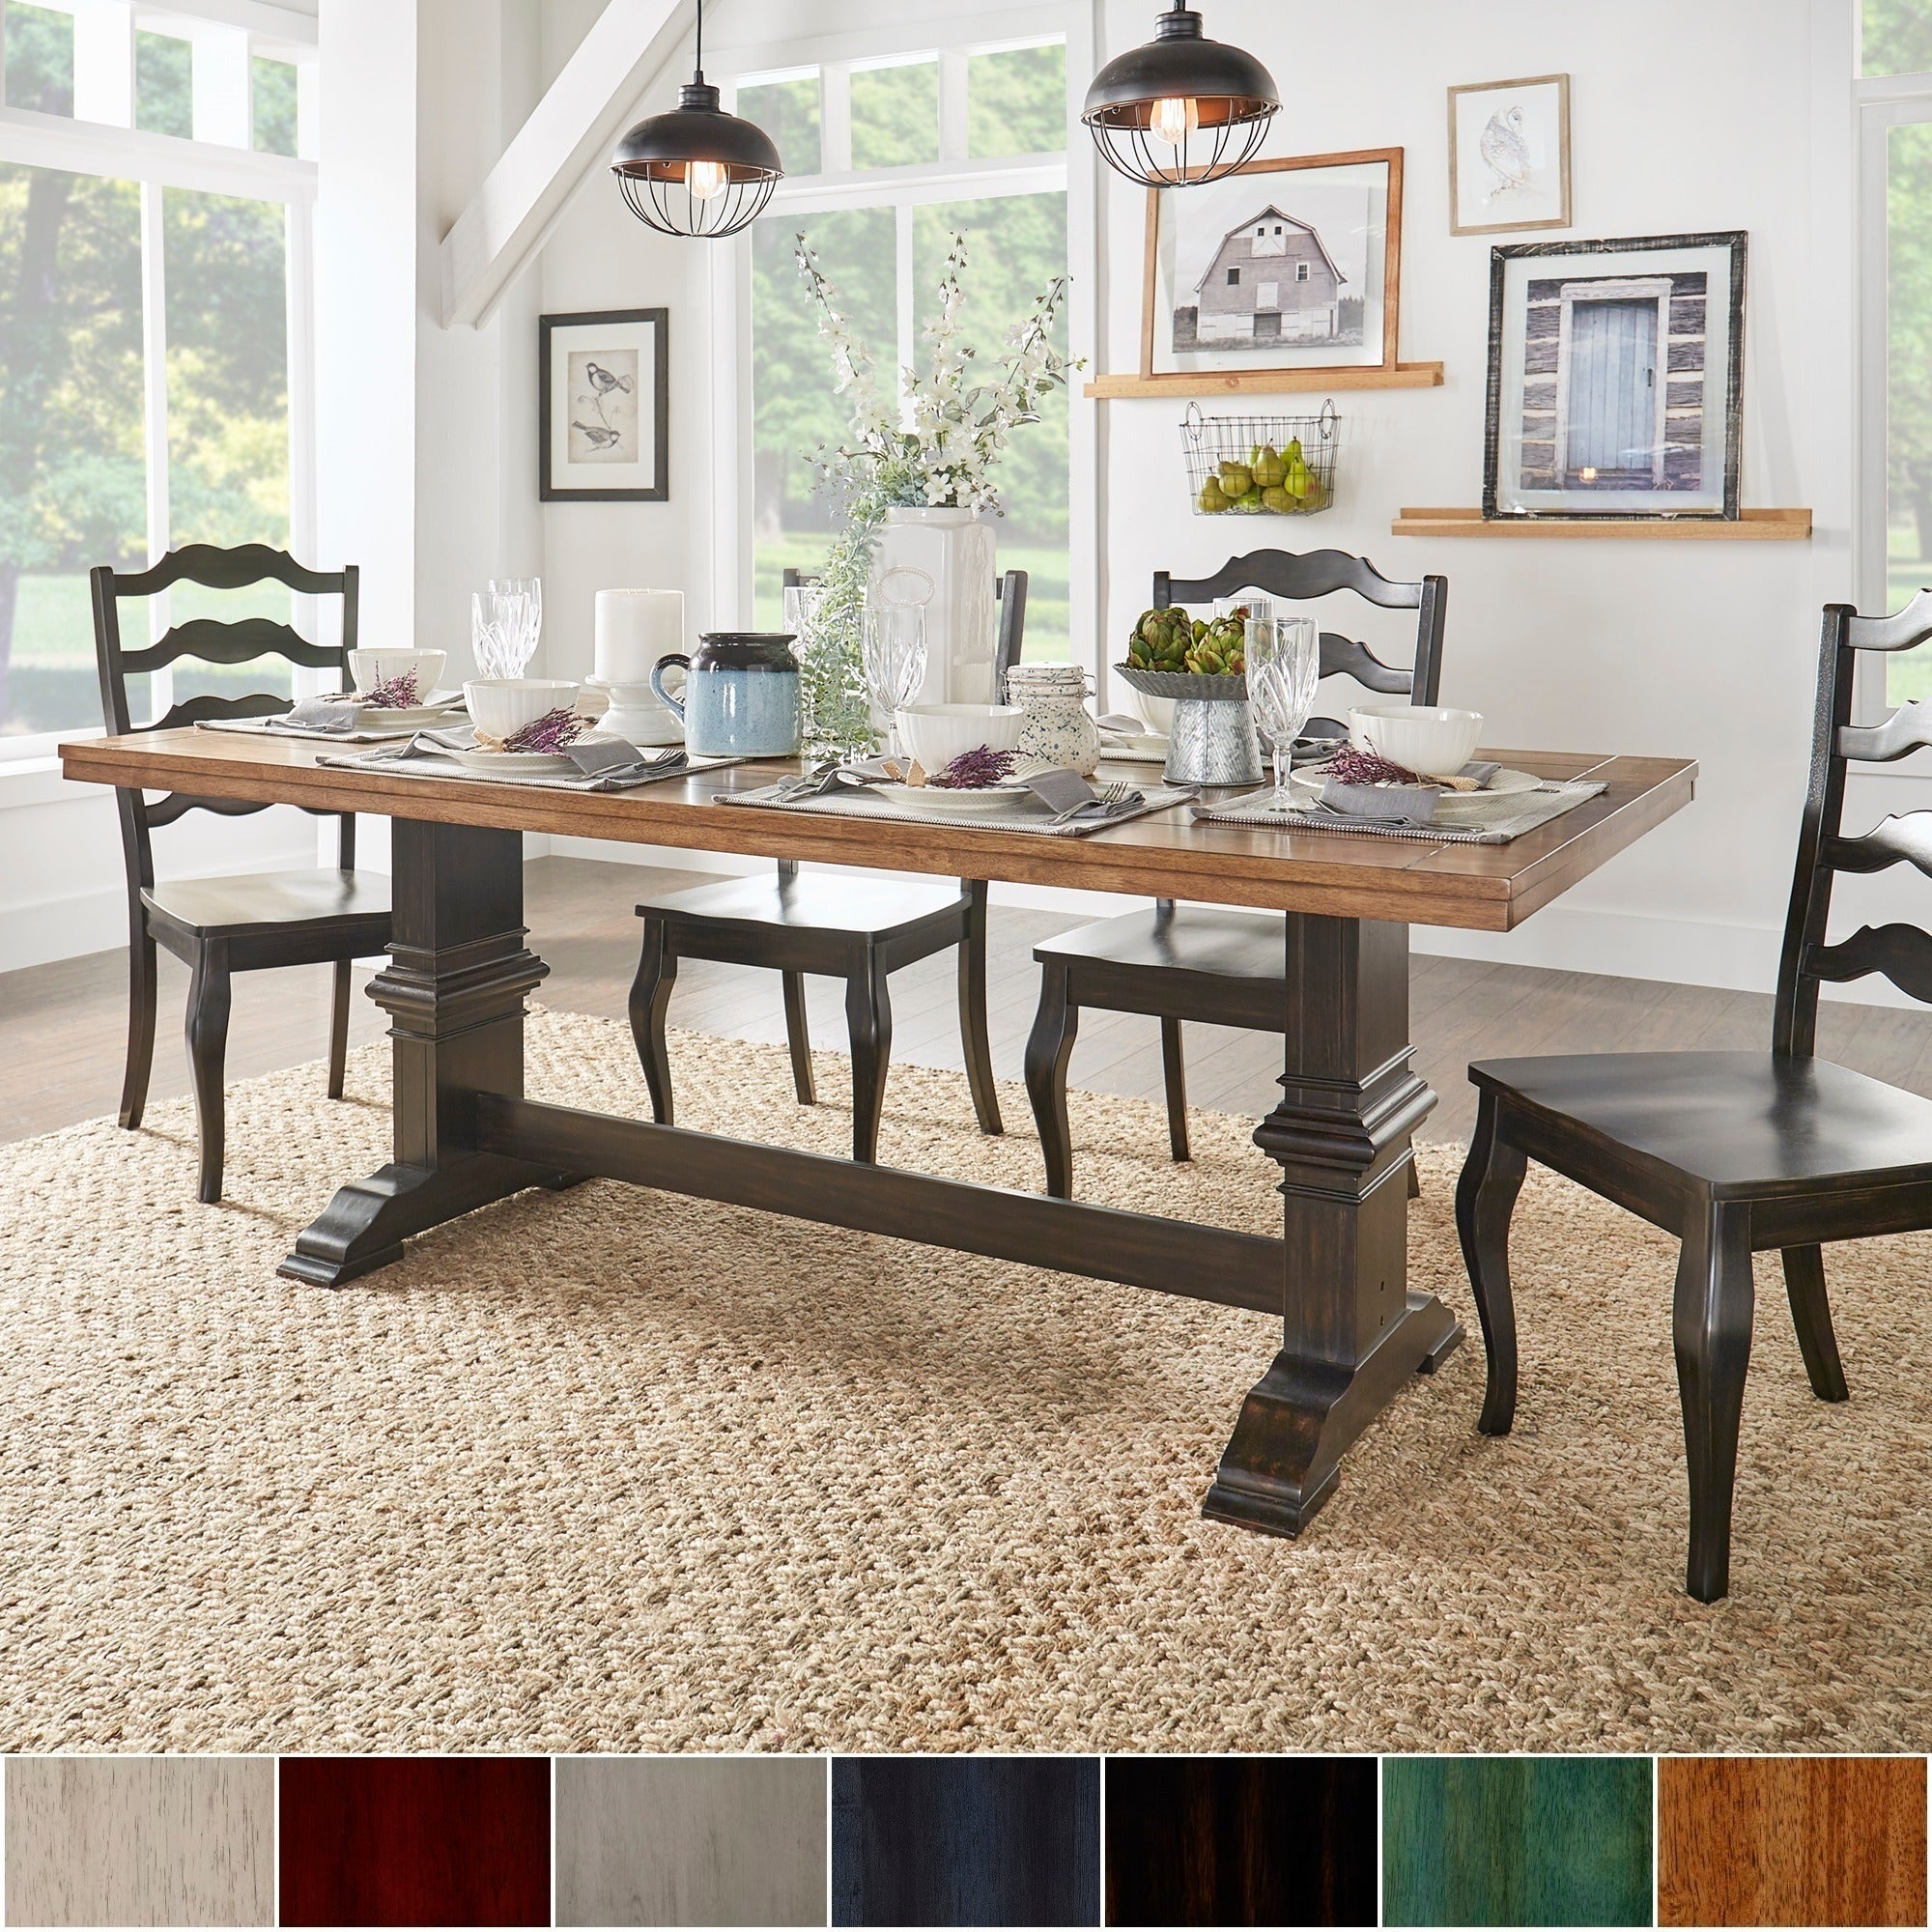 2020 Eleanor Two-Tone Rectangular Solid Wood Top Dining Tableinspire Q  Classic intended for Wood Top Dining Tables